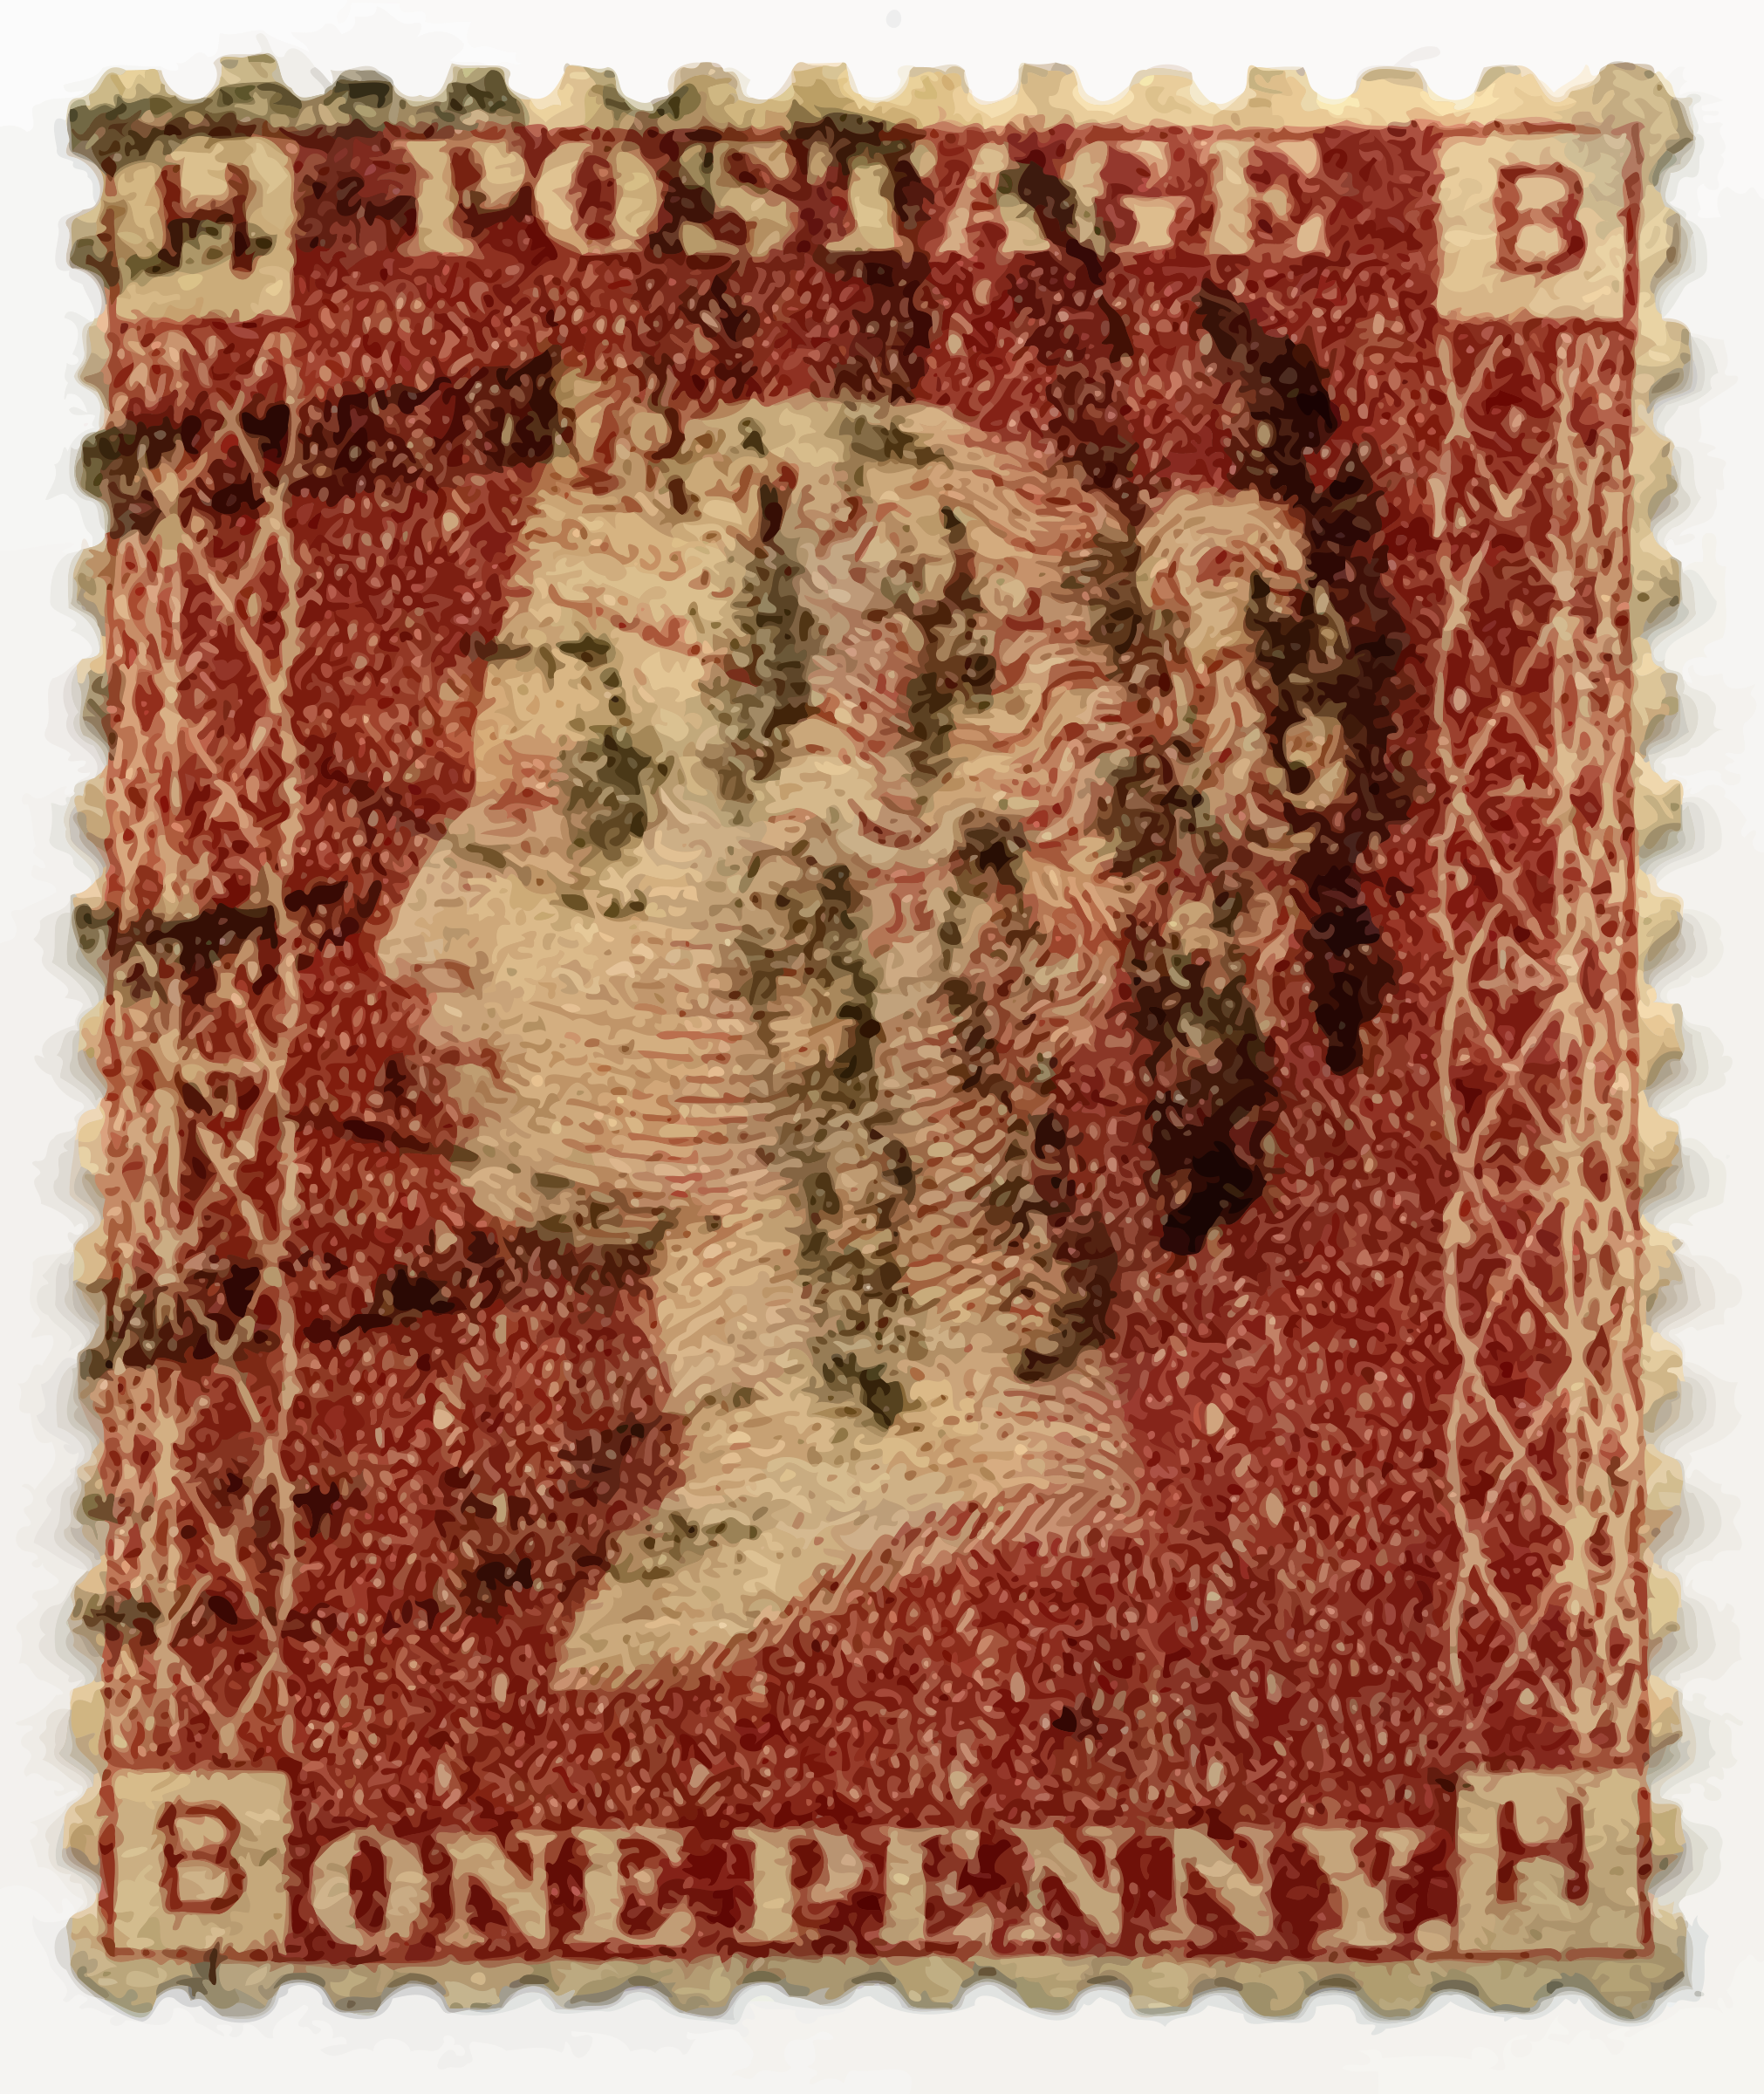 Penny red postage stamp by Firkin